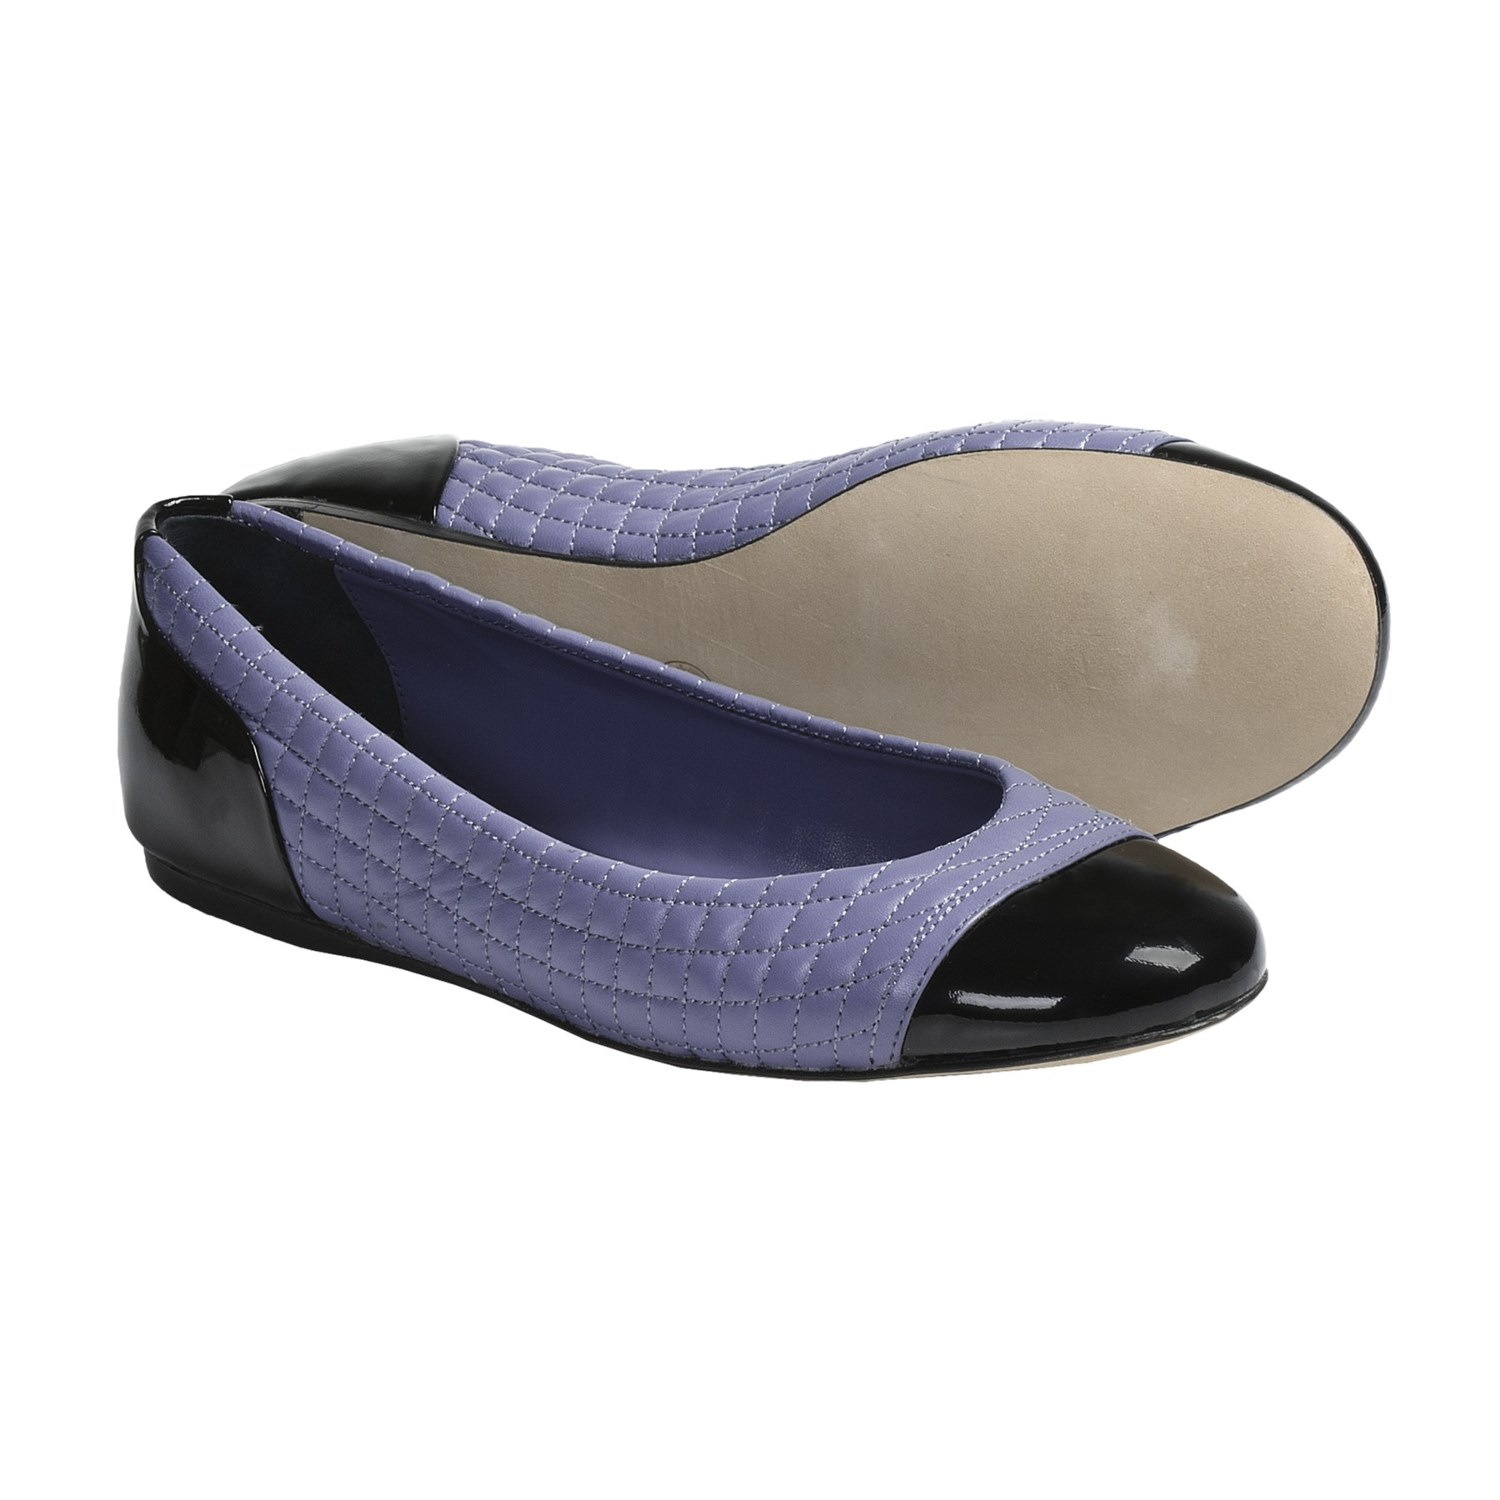 Vintage Shoes for Women in Brand:Bally   eBay